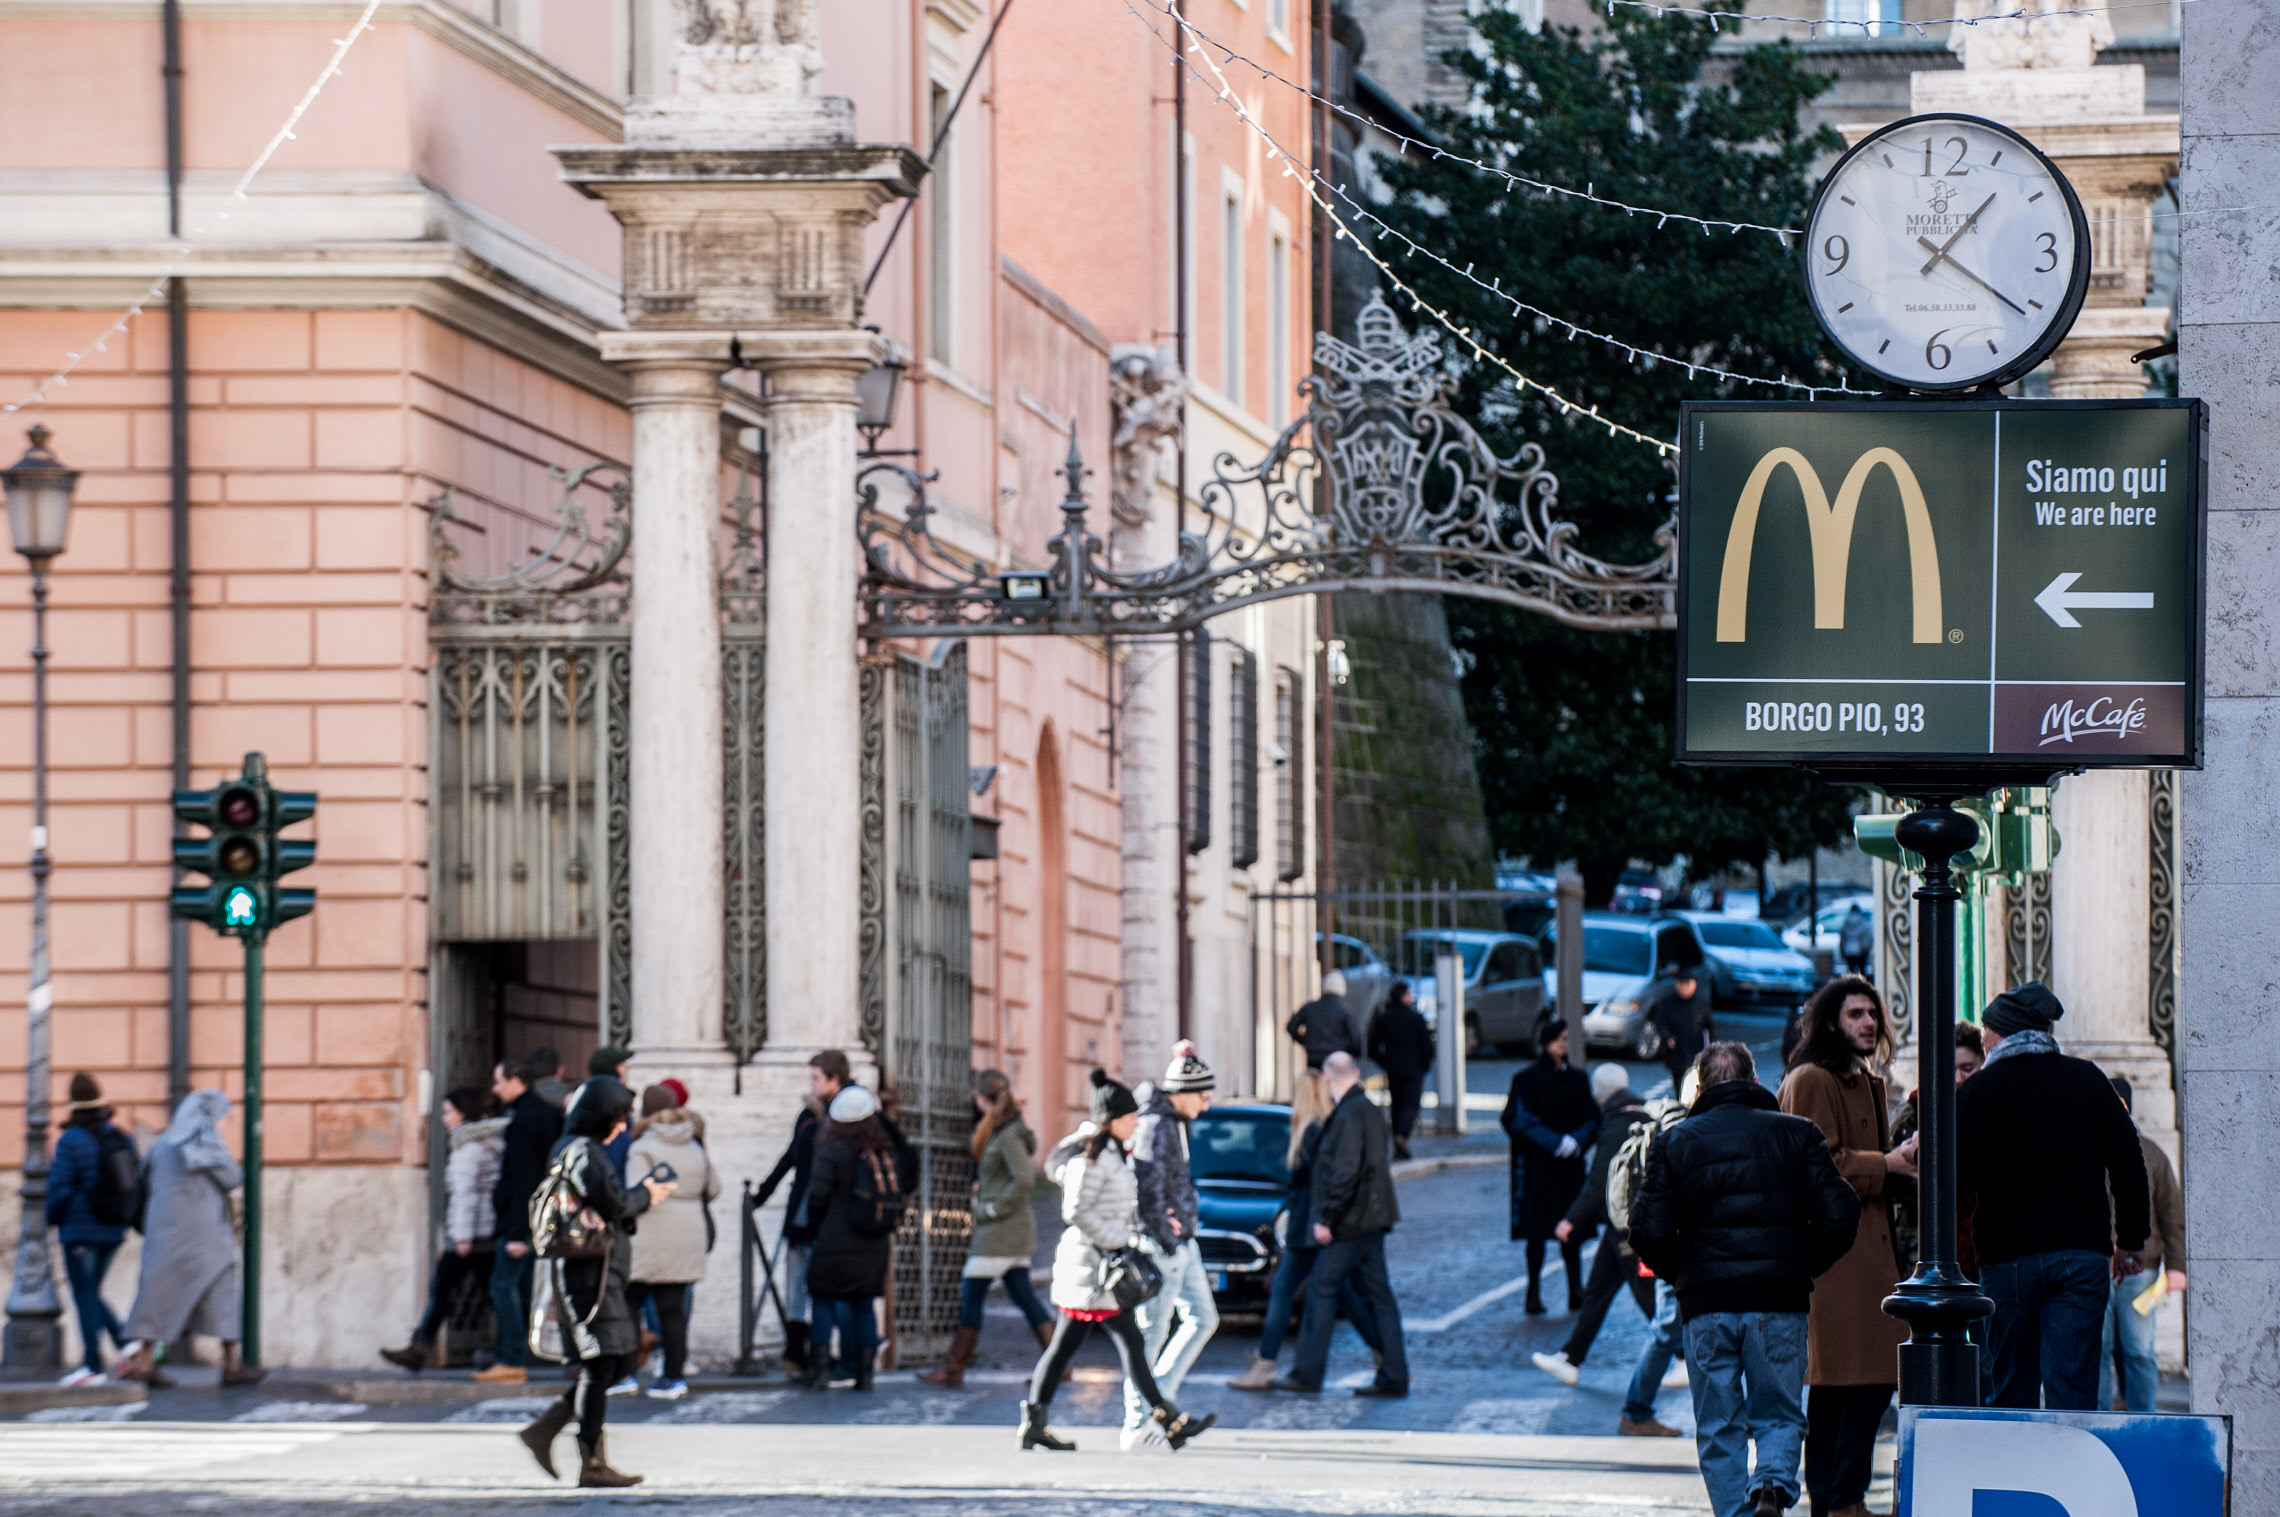 January 5 2017 : A sign showing the direction of a McDonald restaurant is seen near an entrance of the Vatican in the background.